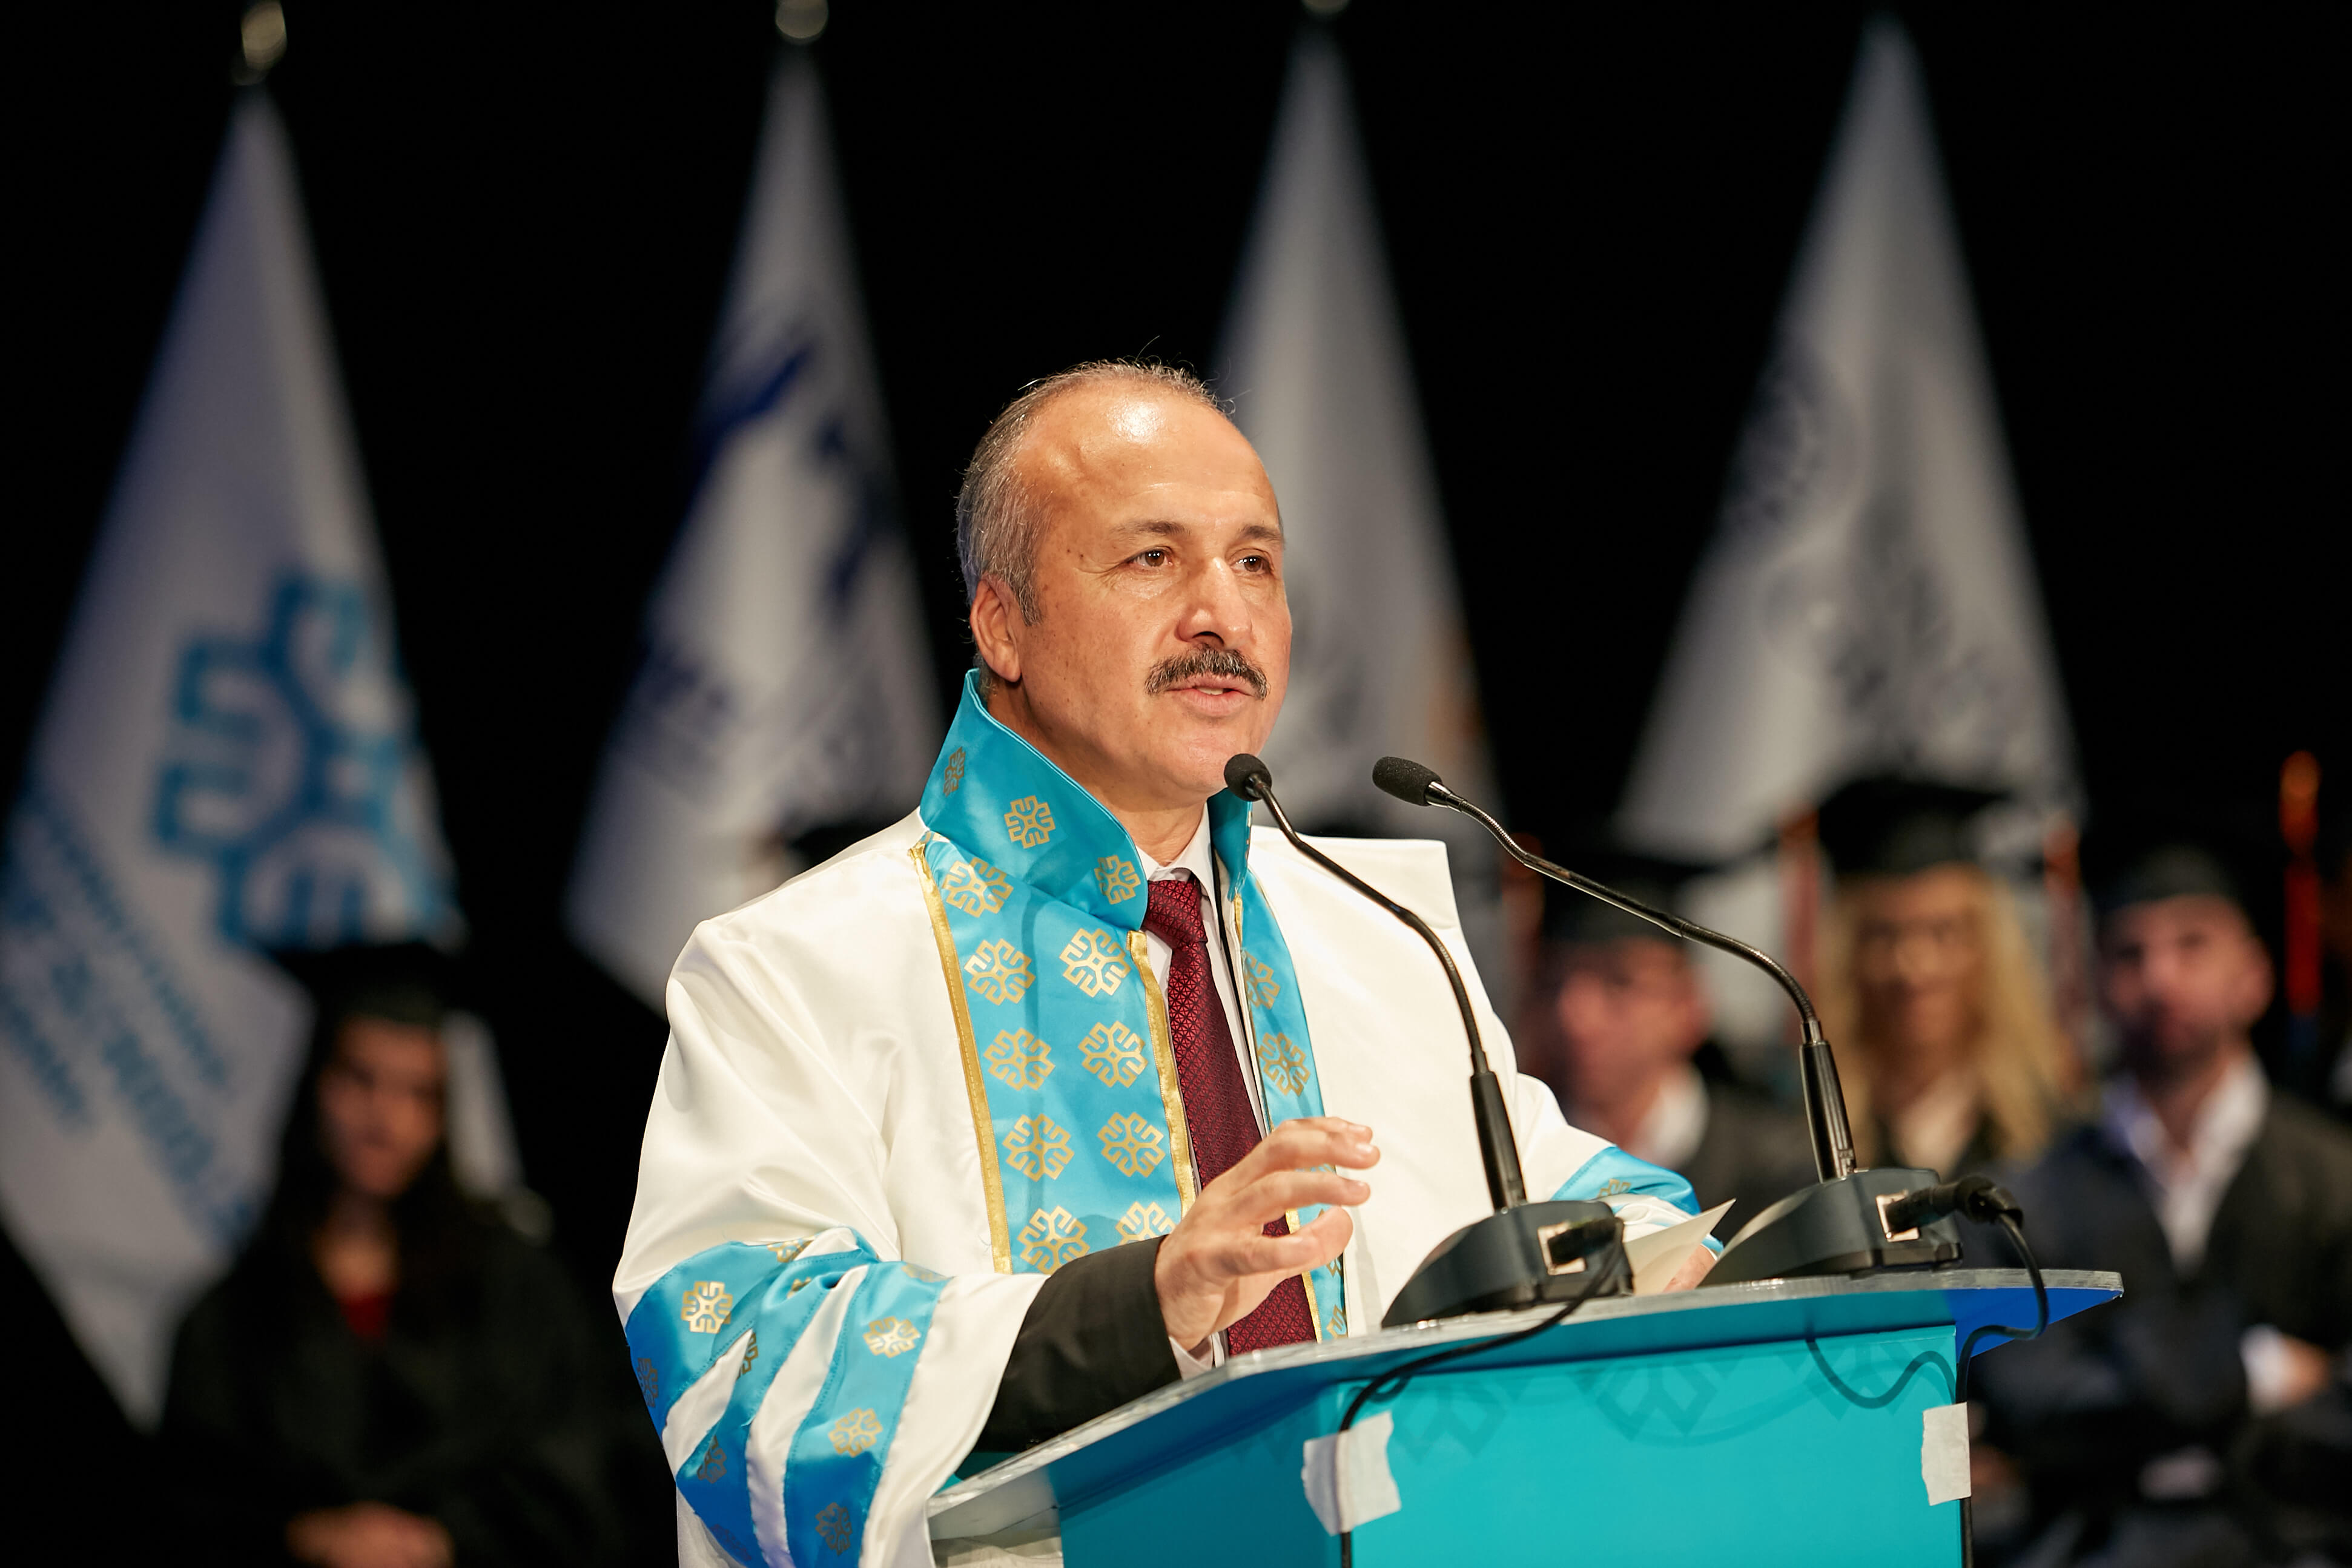 Commencement speech by Prof.Dr Ismail Kocayusufoğlu, Rector of the University of New York Tirana